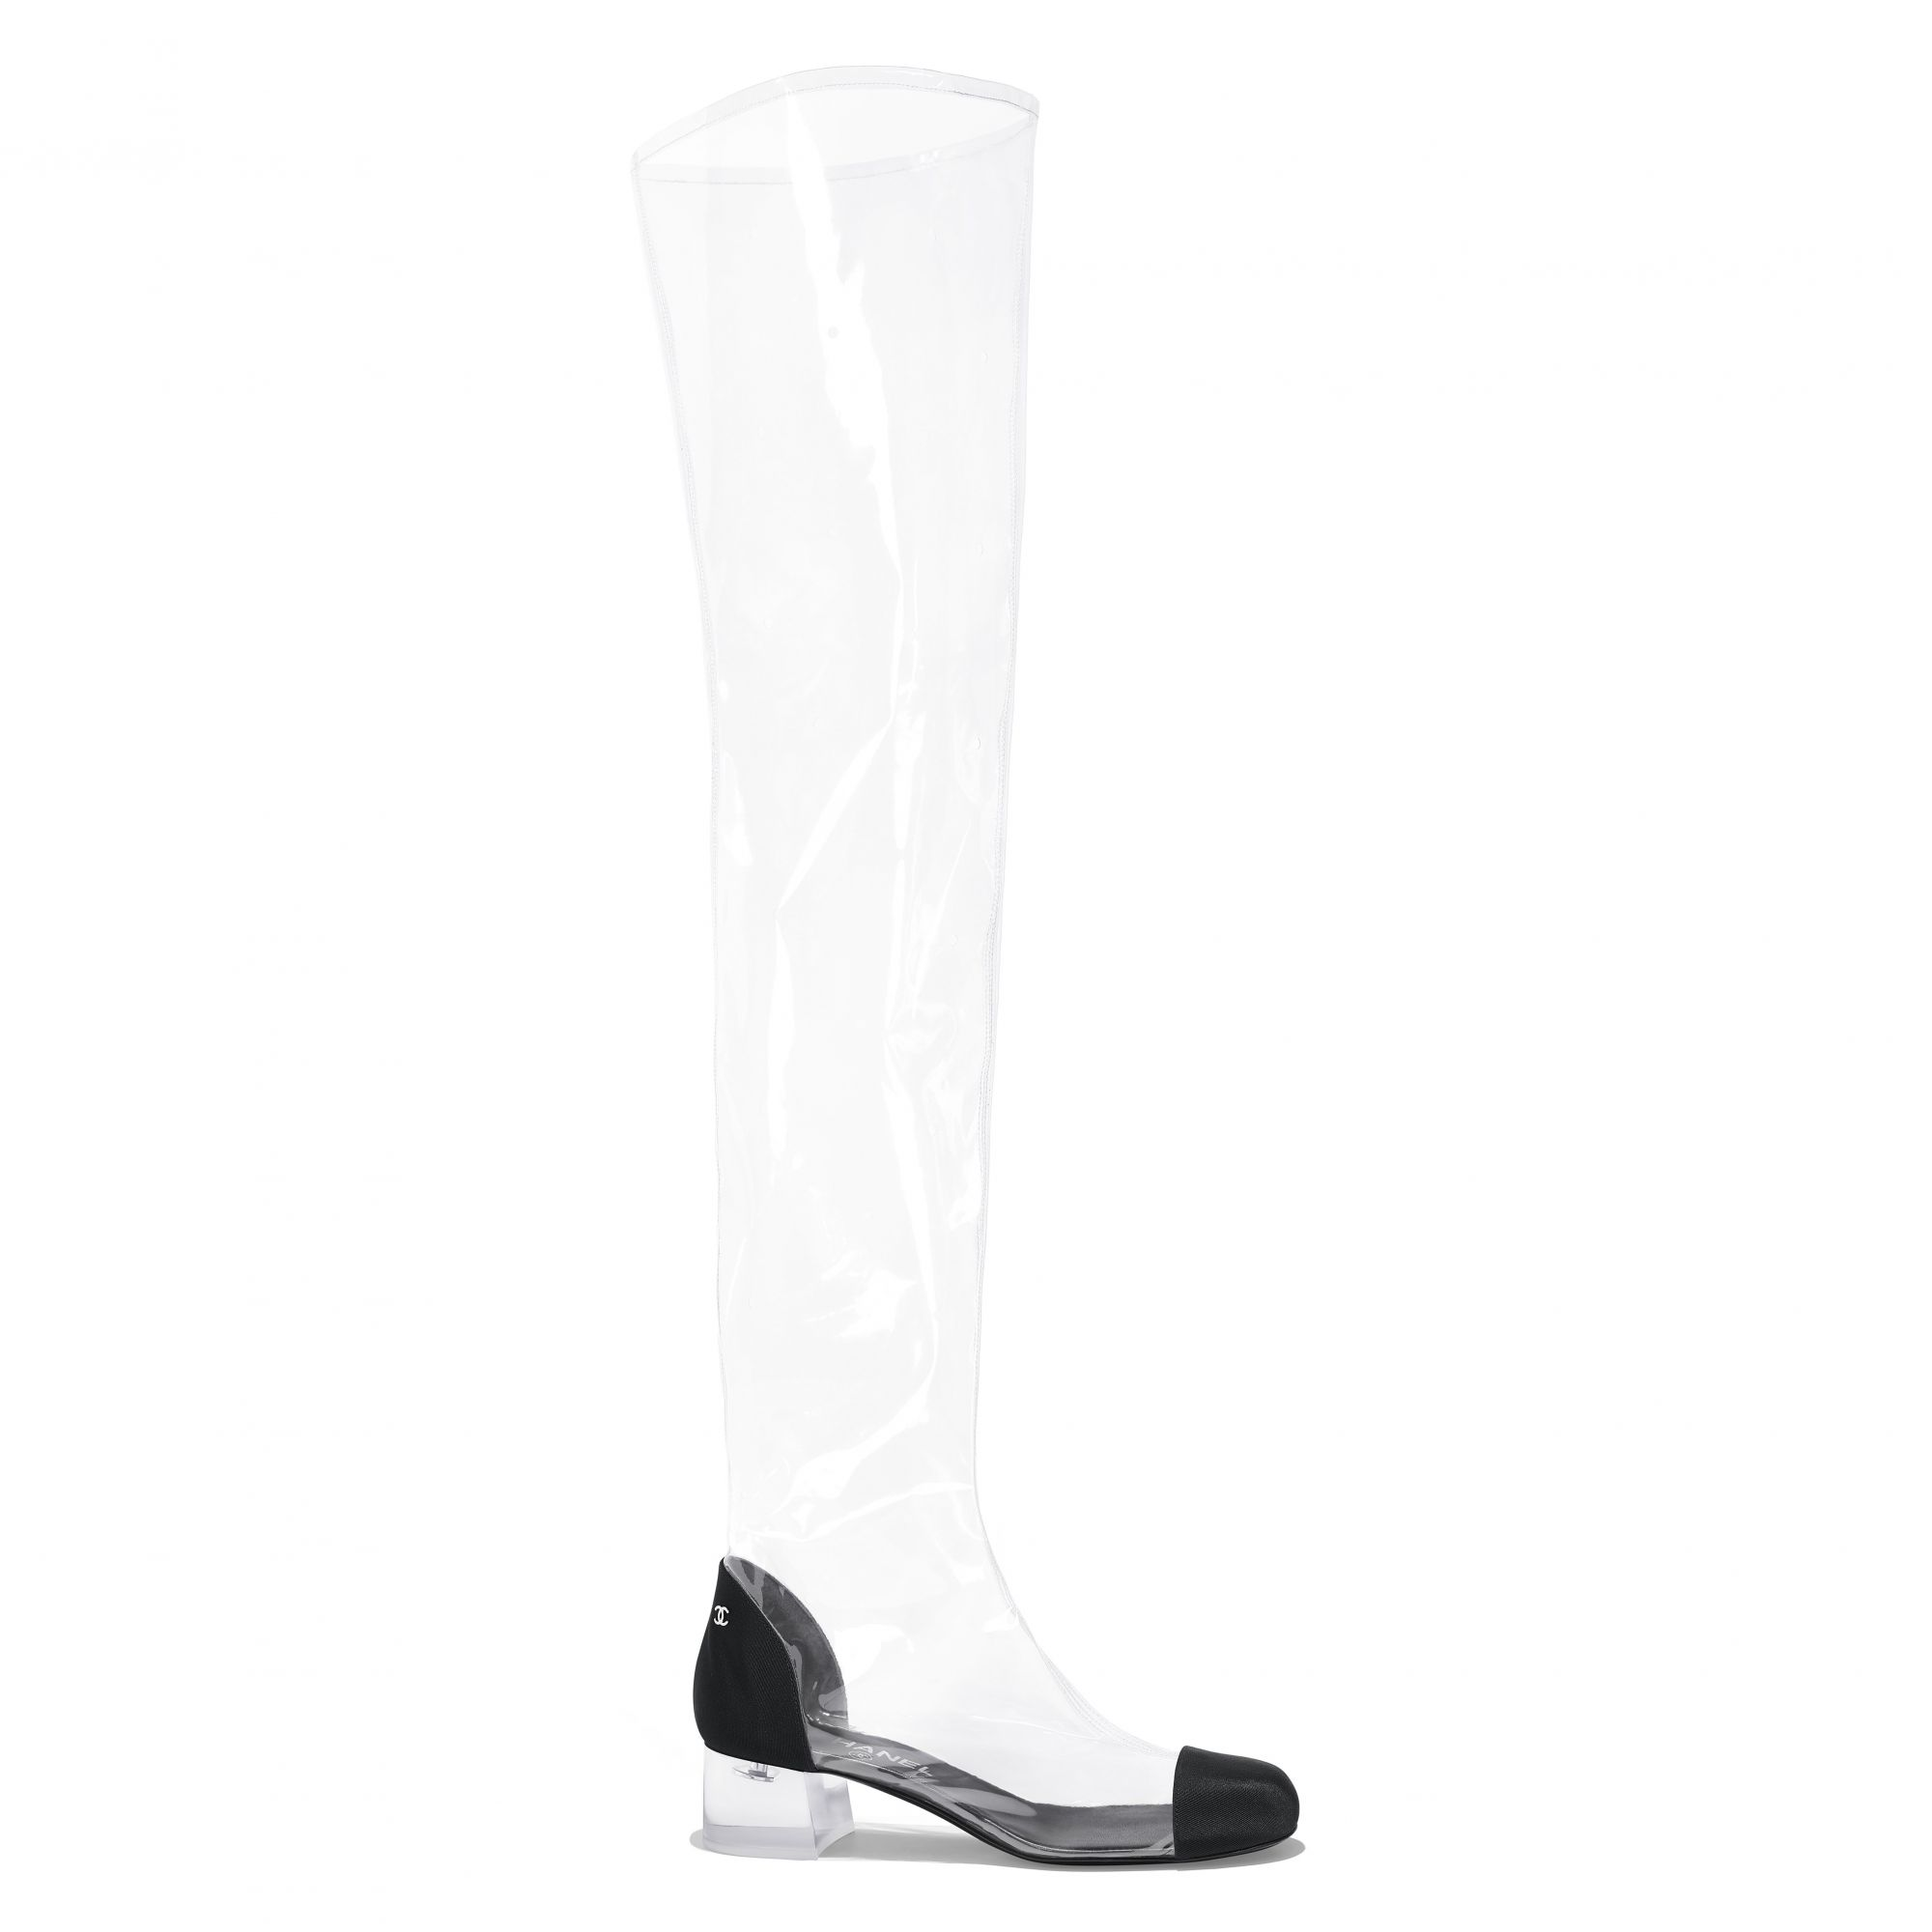 Thigh boot in transparent PVC and black grosgrain